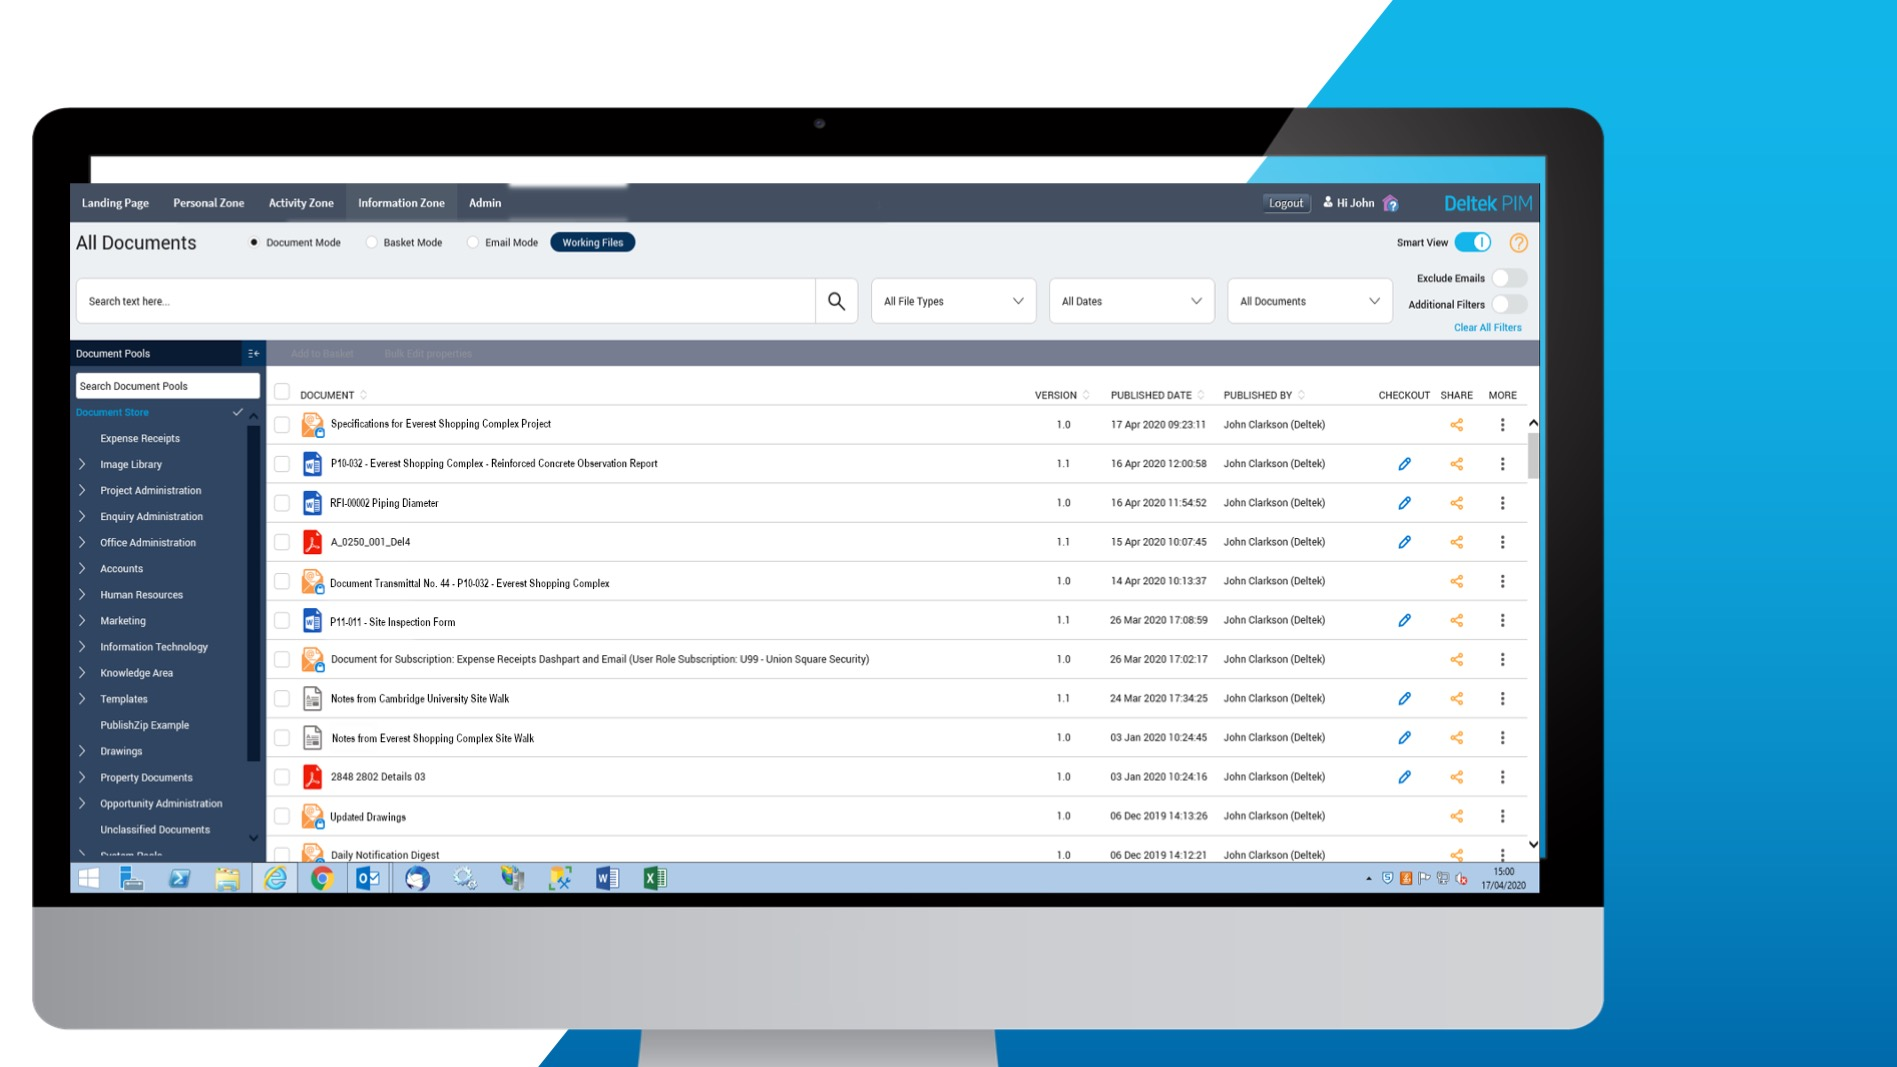 FIND DOCUMENTS QUICKLY